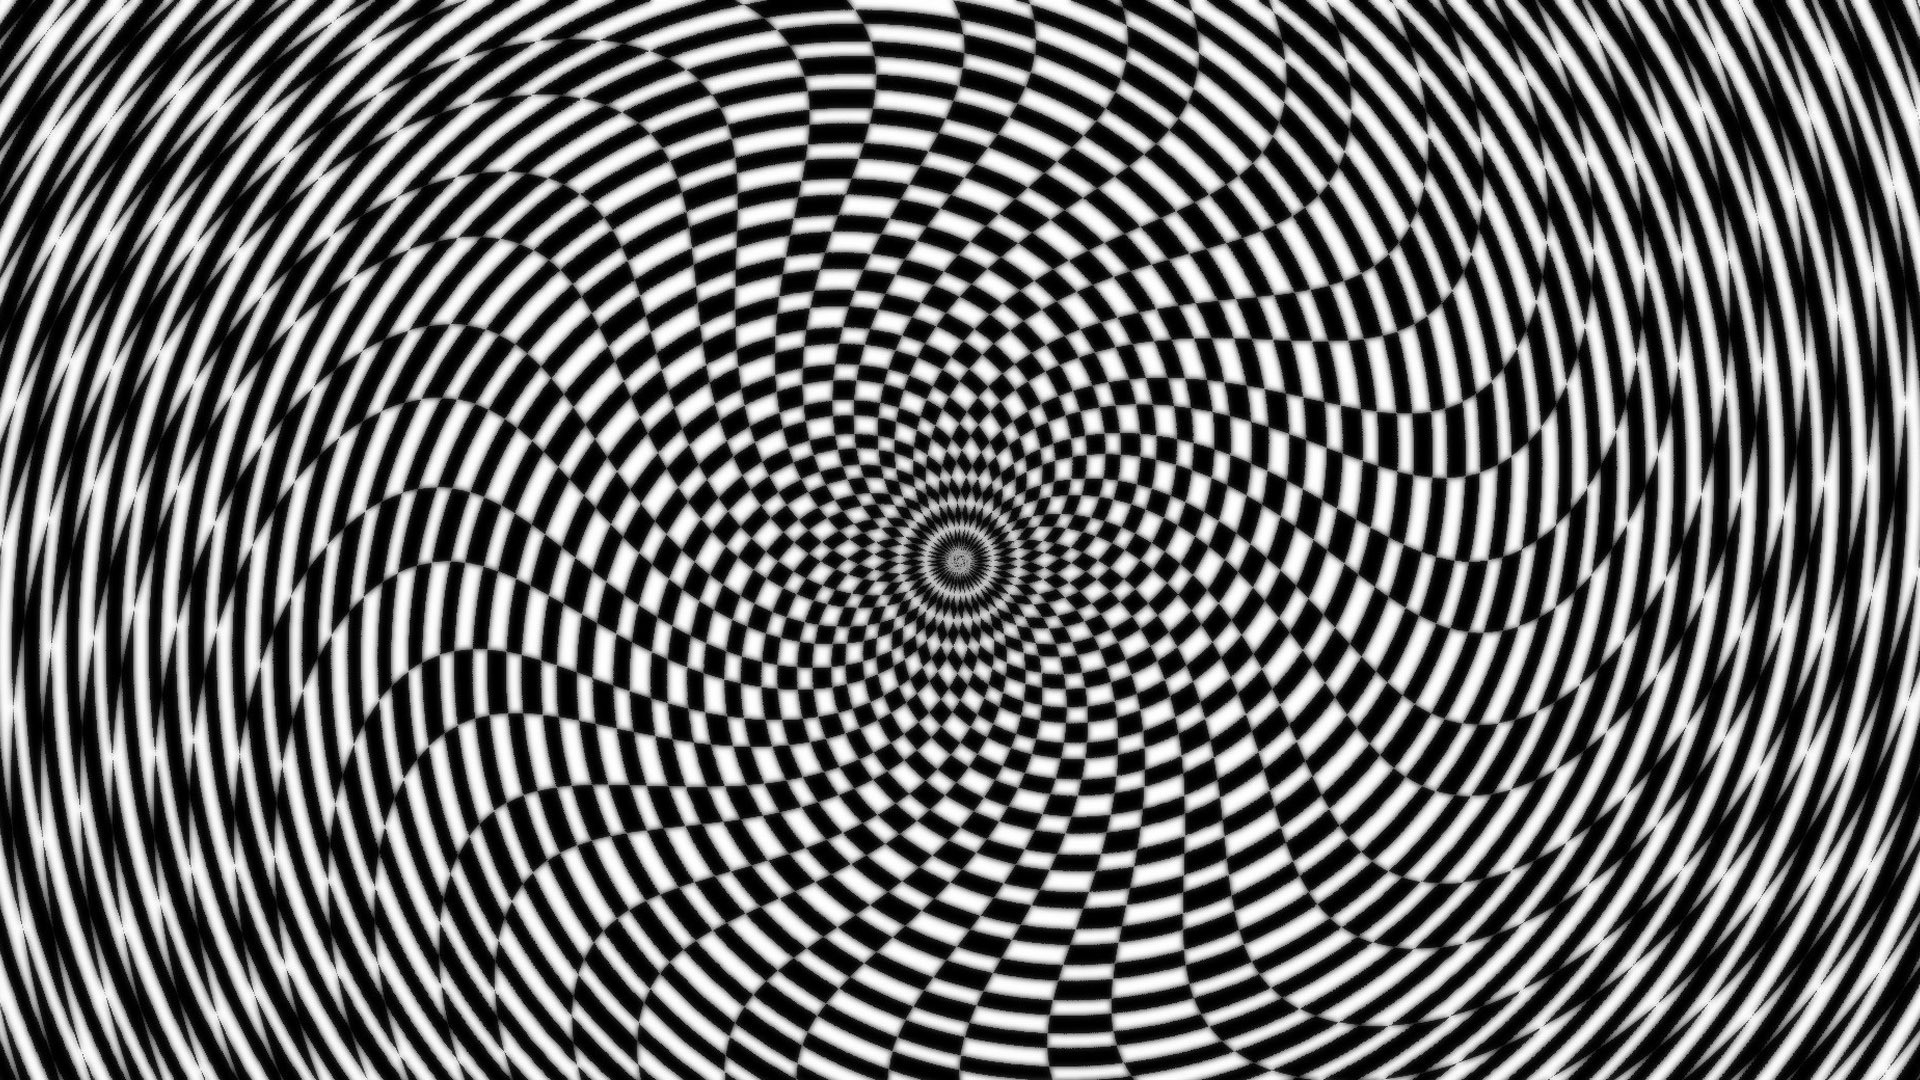 Illusion Wallpapers Free Download